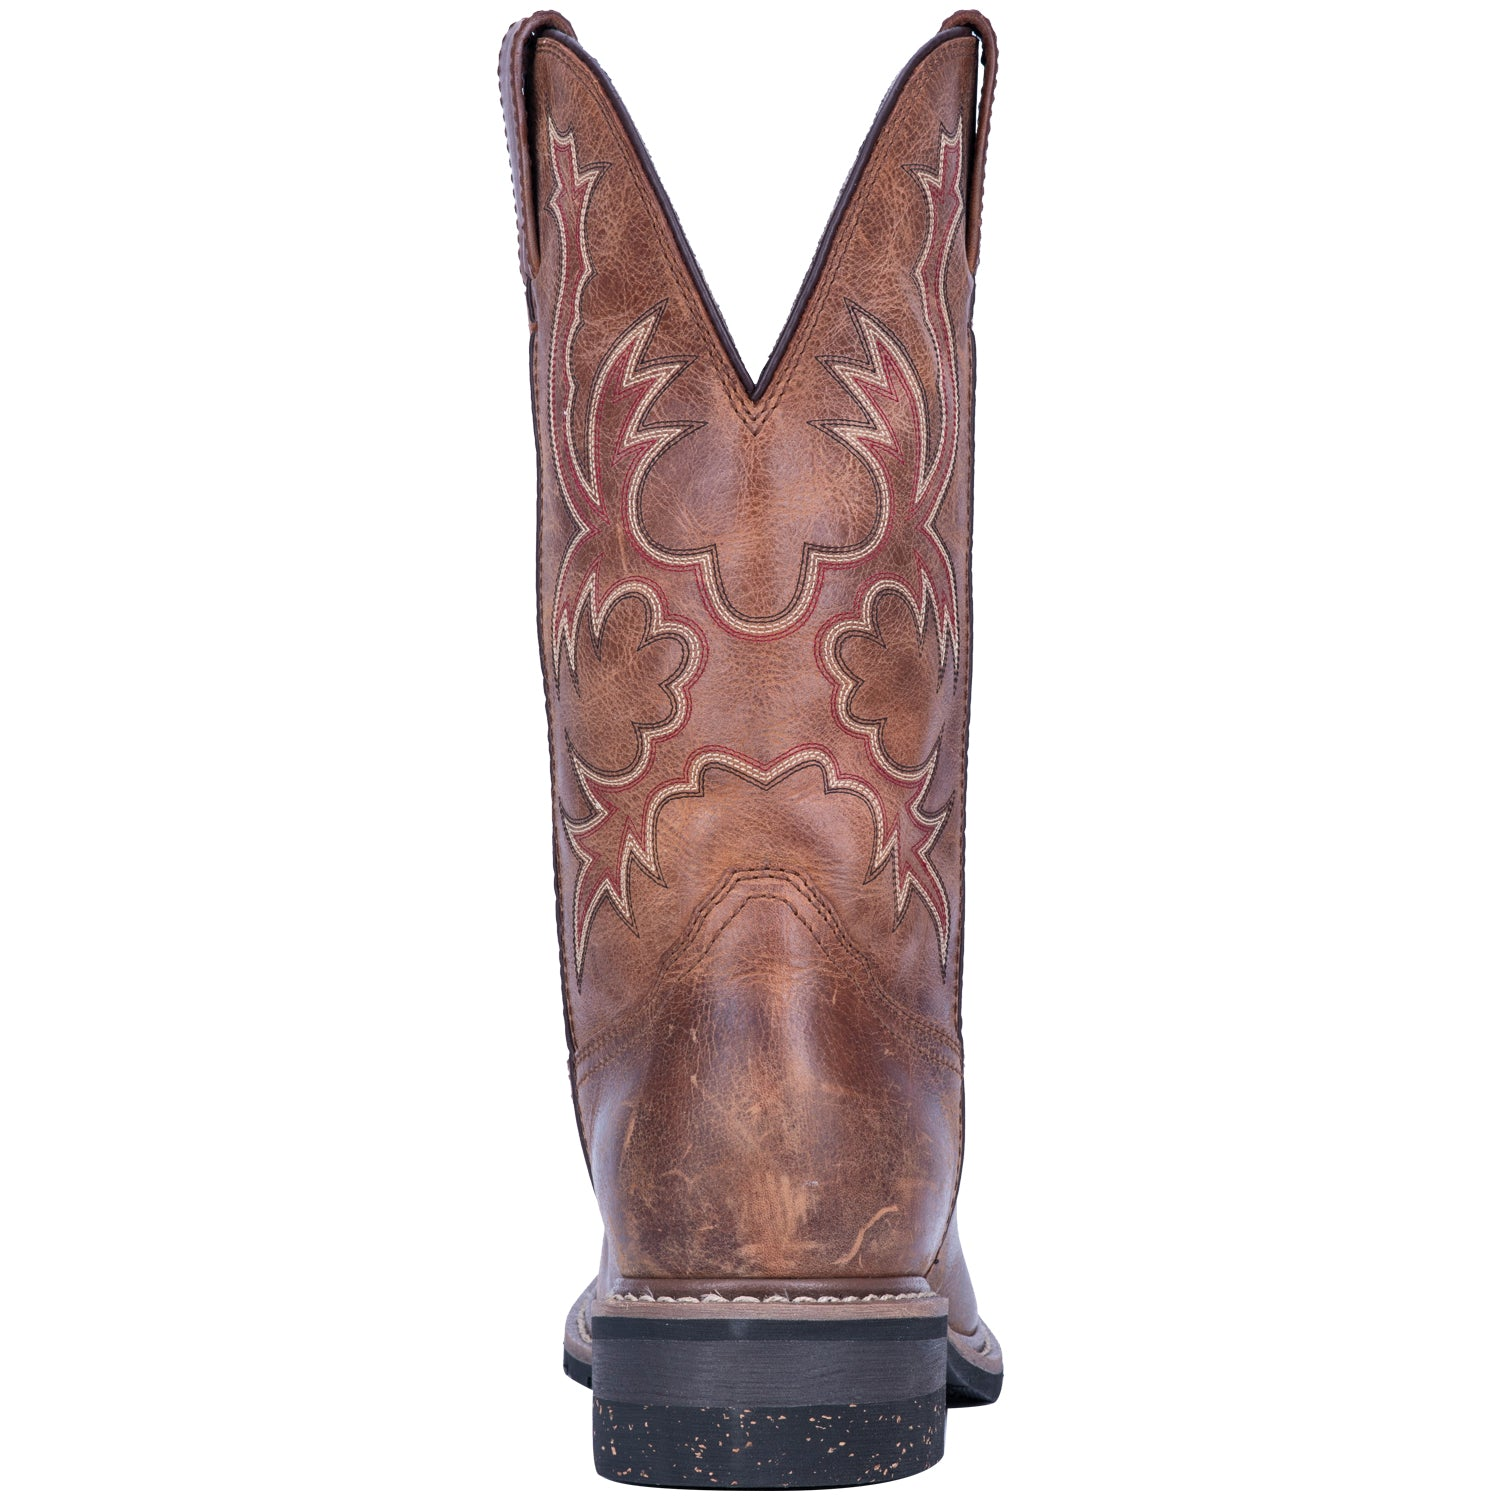 NOGALES WATERPROOF LEATHER BOOT 4253979213866